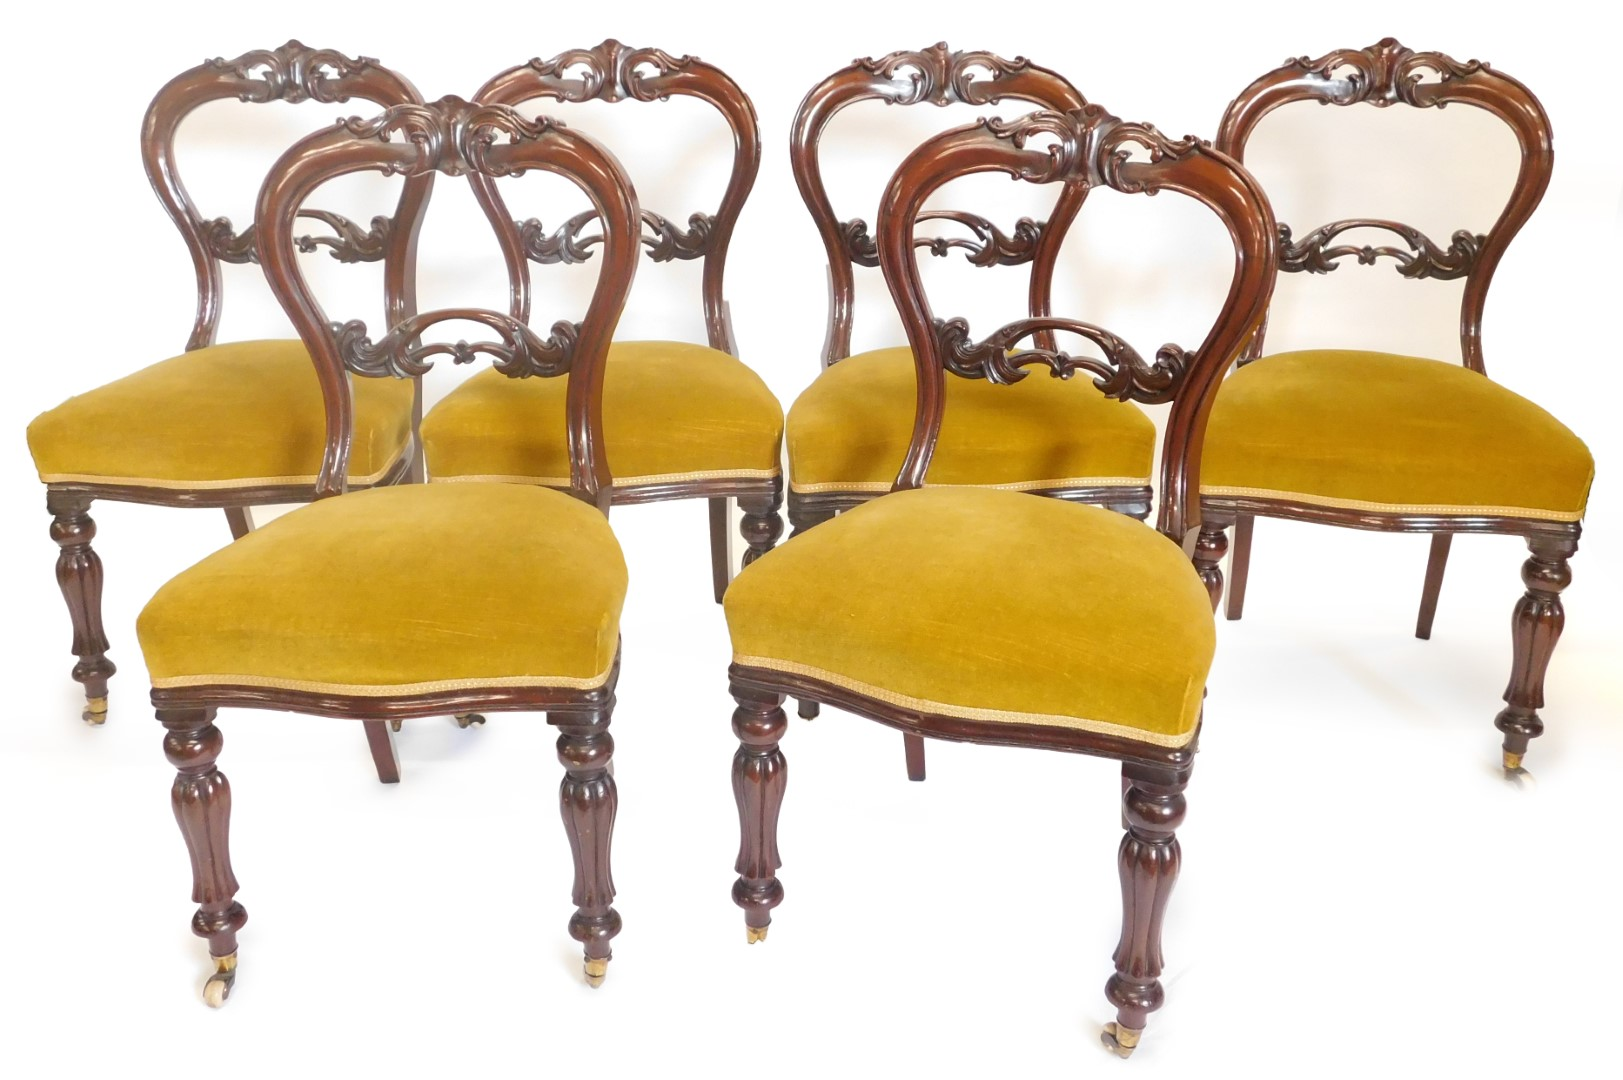 A set of six early Victorian mahogany balloon back chairs, each with a shaped carved and pierced bac